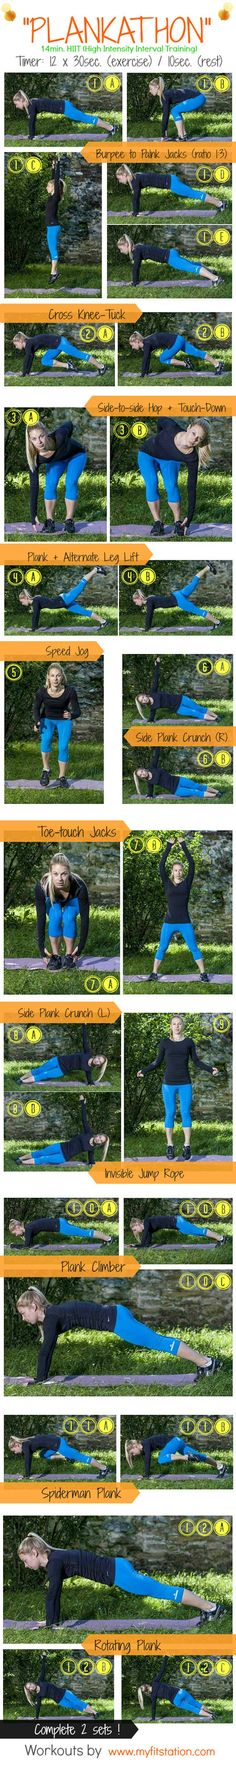 Plankathon HIIT Workout